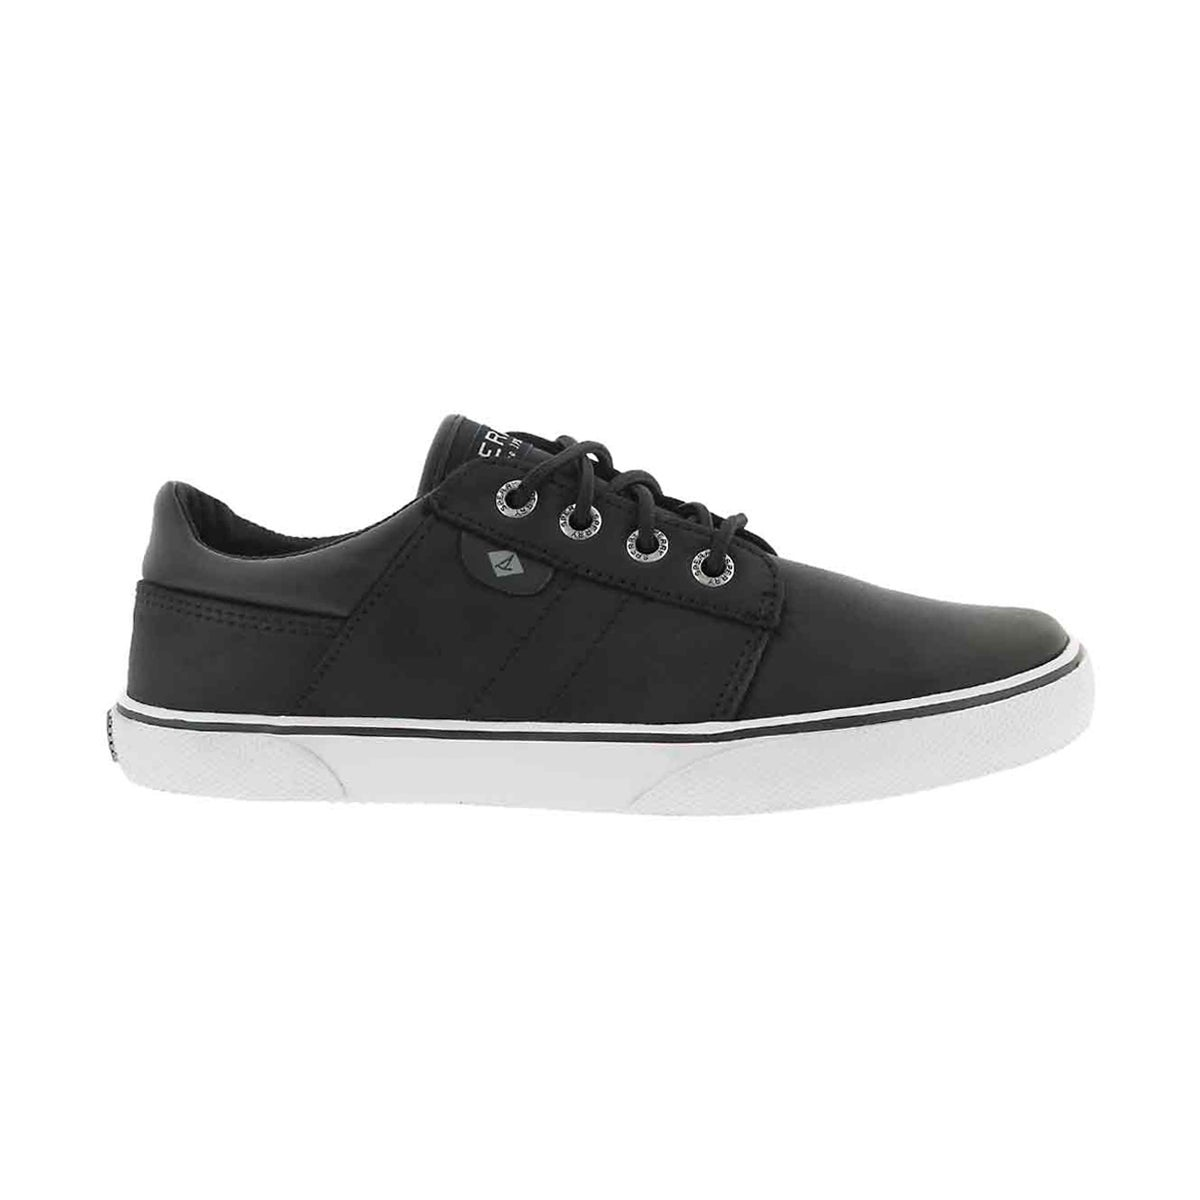 Bys Ollie black lace up sneaker